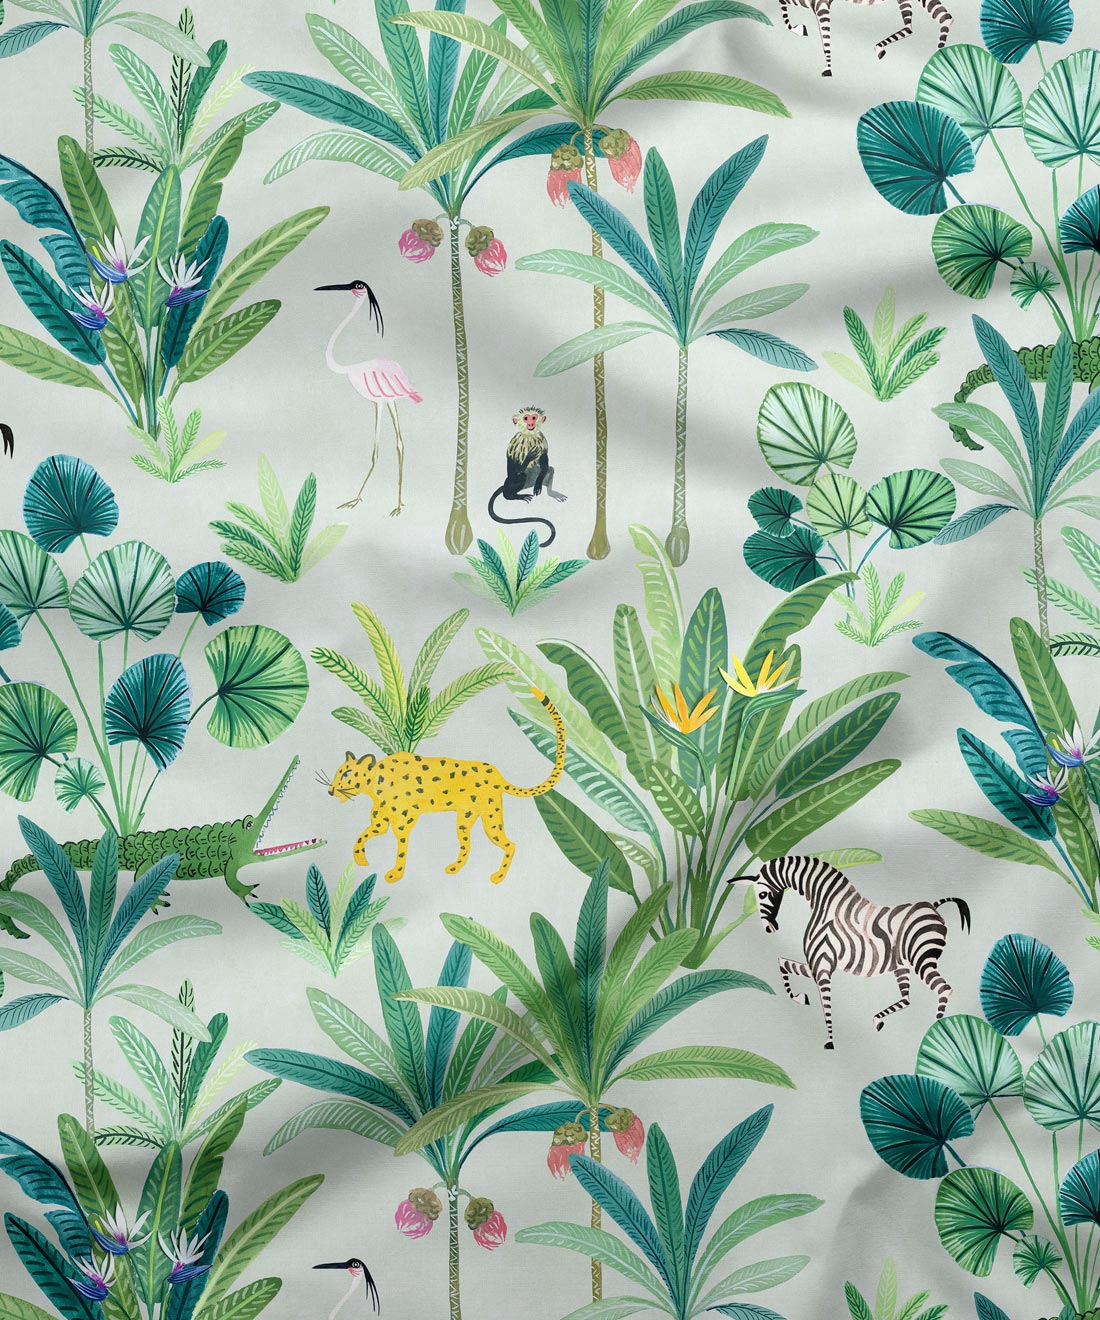 Animal Kingdom Fabric